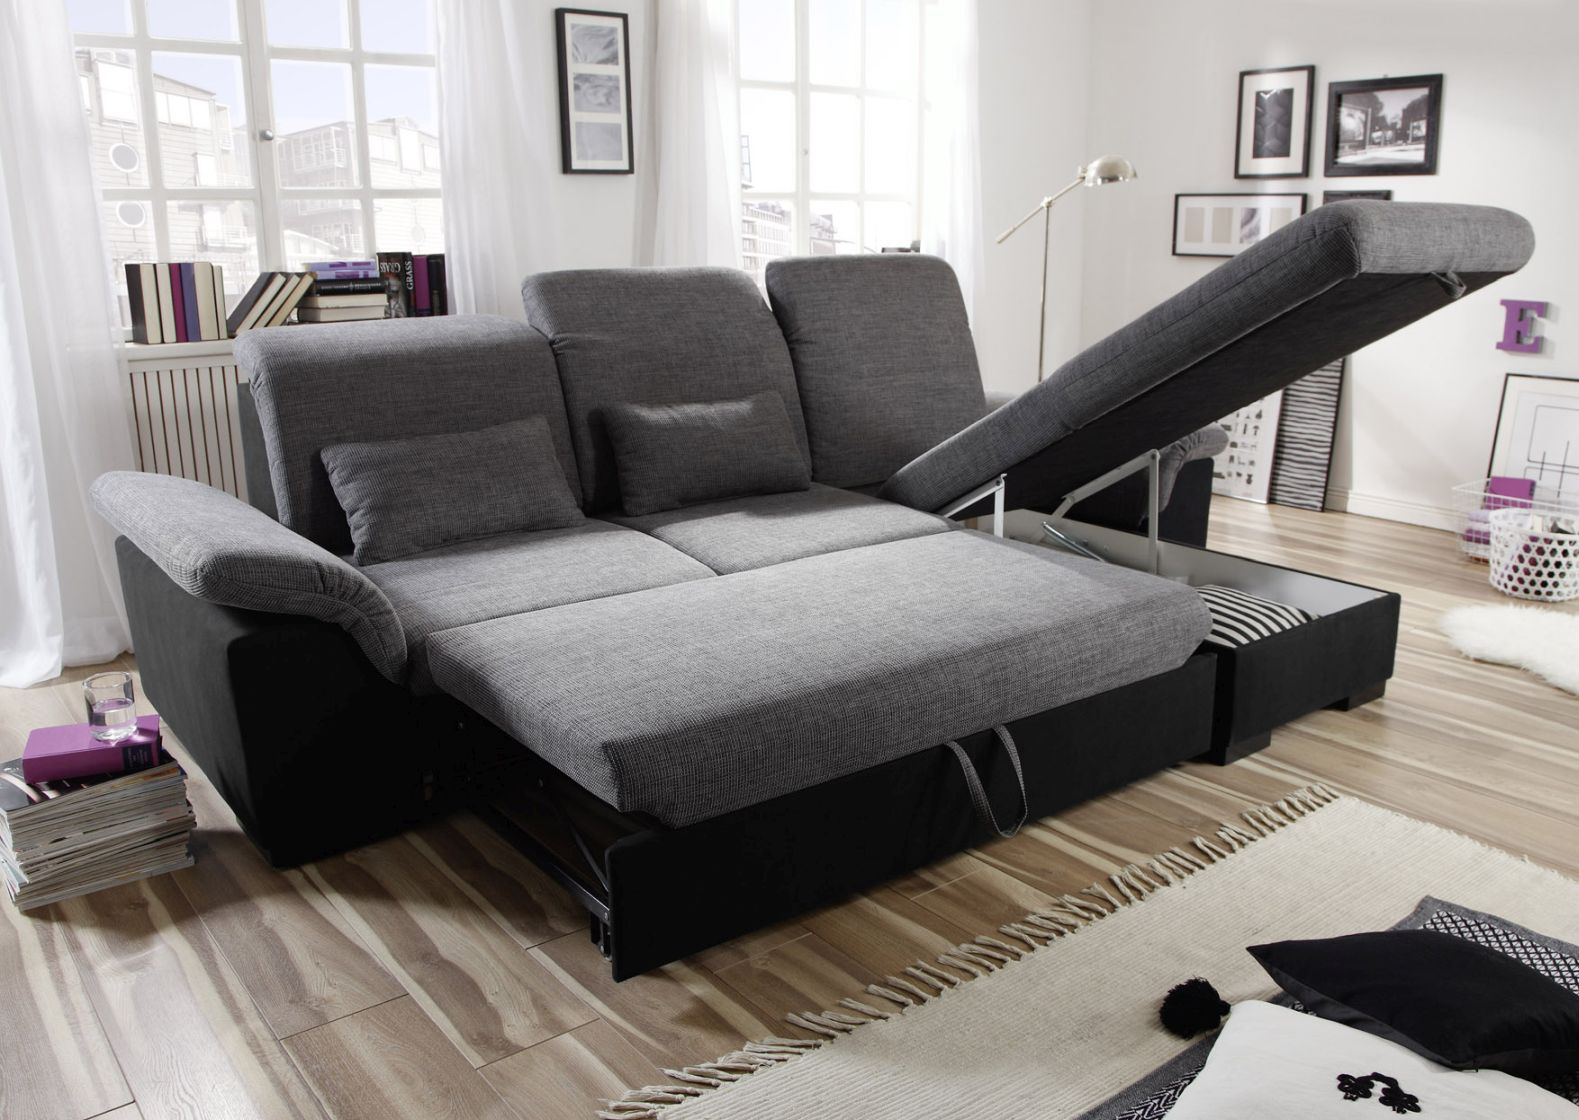 ecksofa couch schlafsofa sofabett funktionssofa ausziehbar schwarz 281 cm ebay. Black Bedroom Furniture Sets. Home Design Ideas